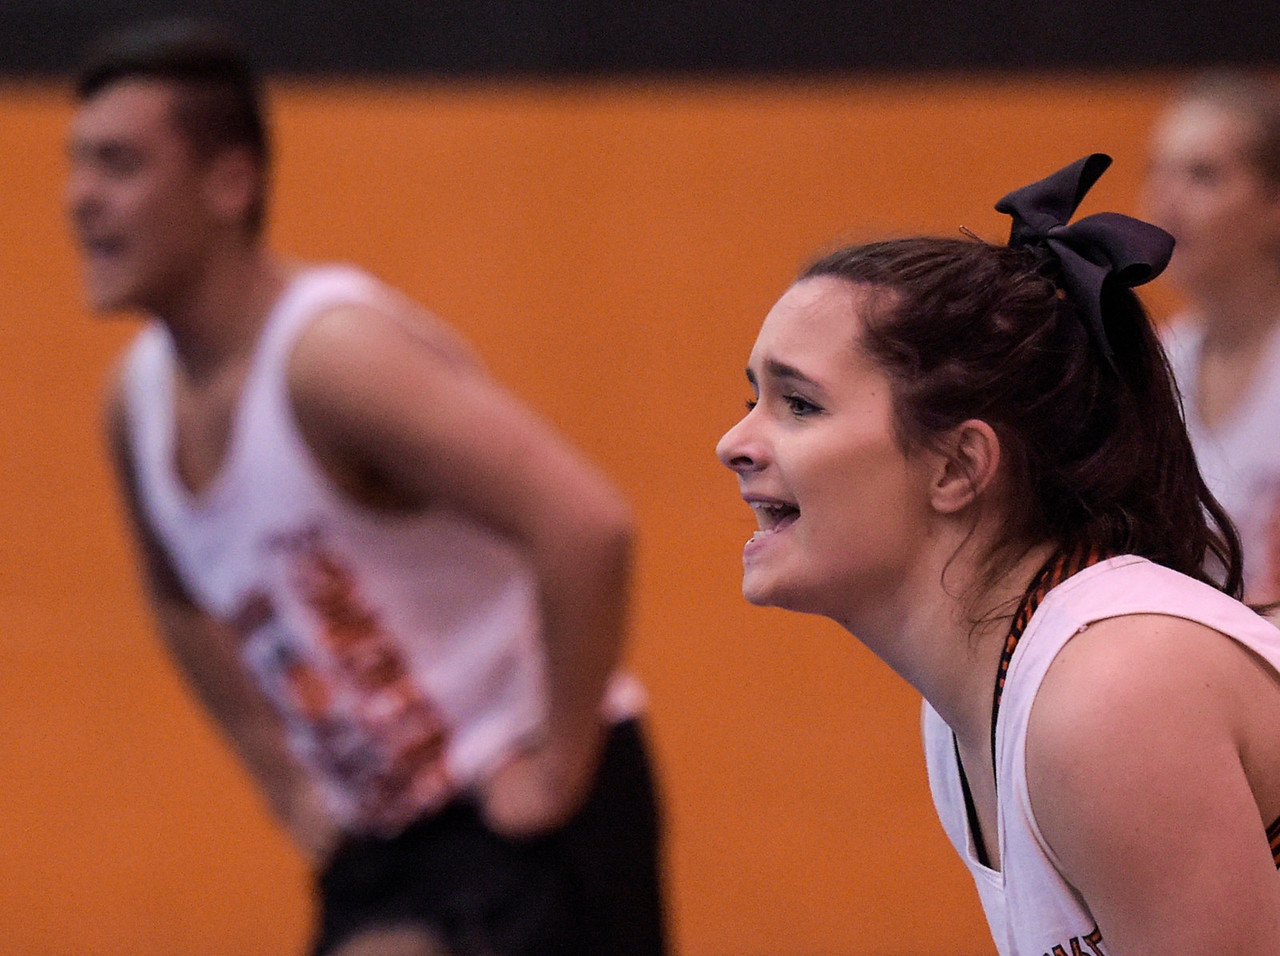 Jessica Rudolph cheers on teammate Amanda Dumovich (cq), not pictured, as her teammate practices a pass across the floor on Wednesday, Feb. 1, 2017 as the team prepares for the state competition. The Crystal Lake Central High School cheerleading team won the ___ sectional and will leave for the state competition Thursday.